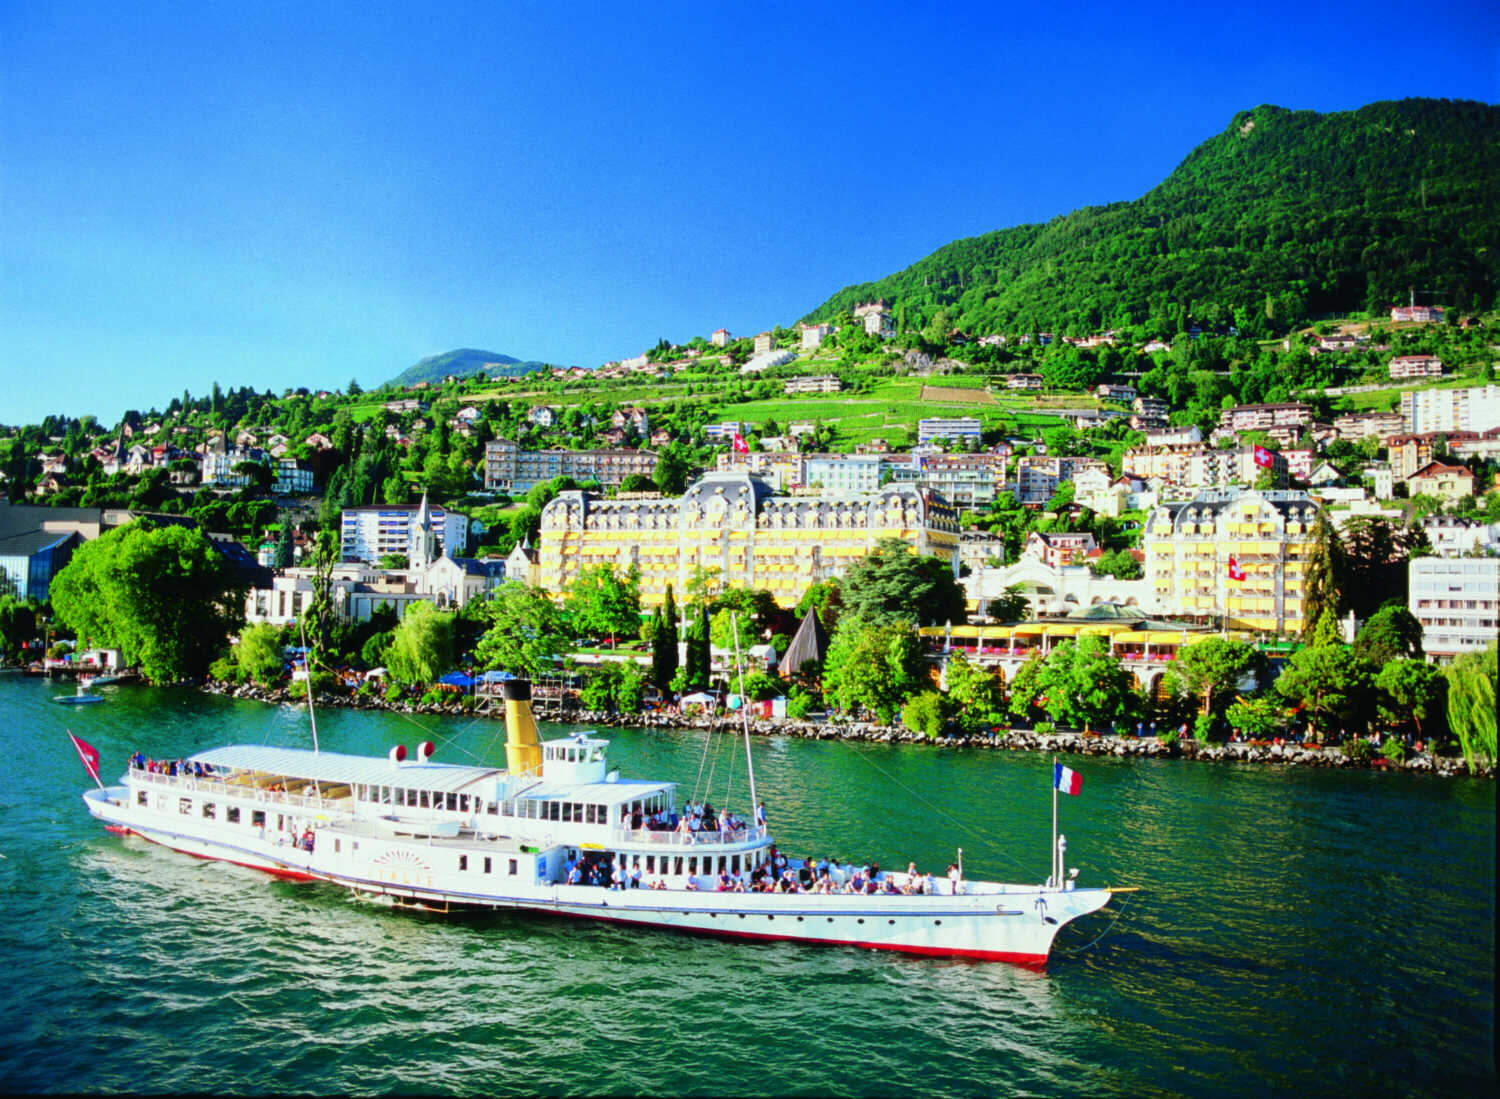 Montreux Switzerland  city photos gallery : Montreux Switzerland Image